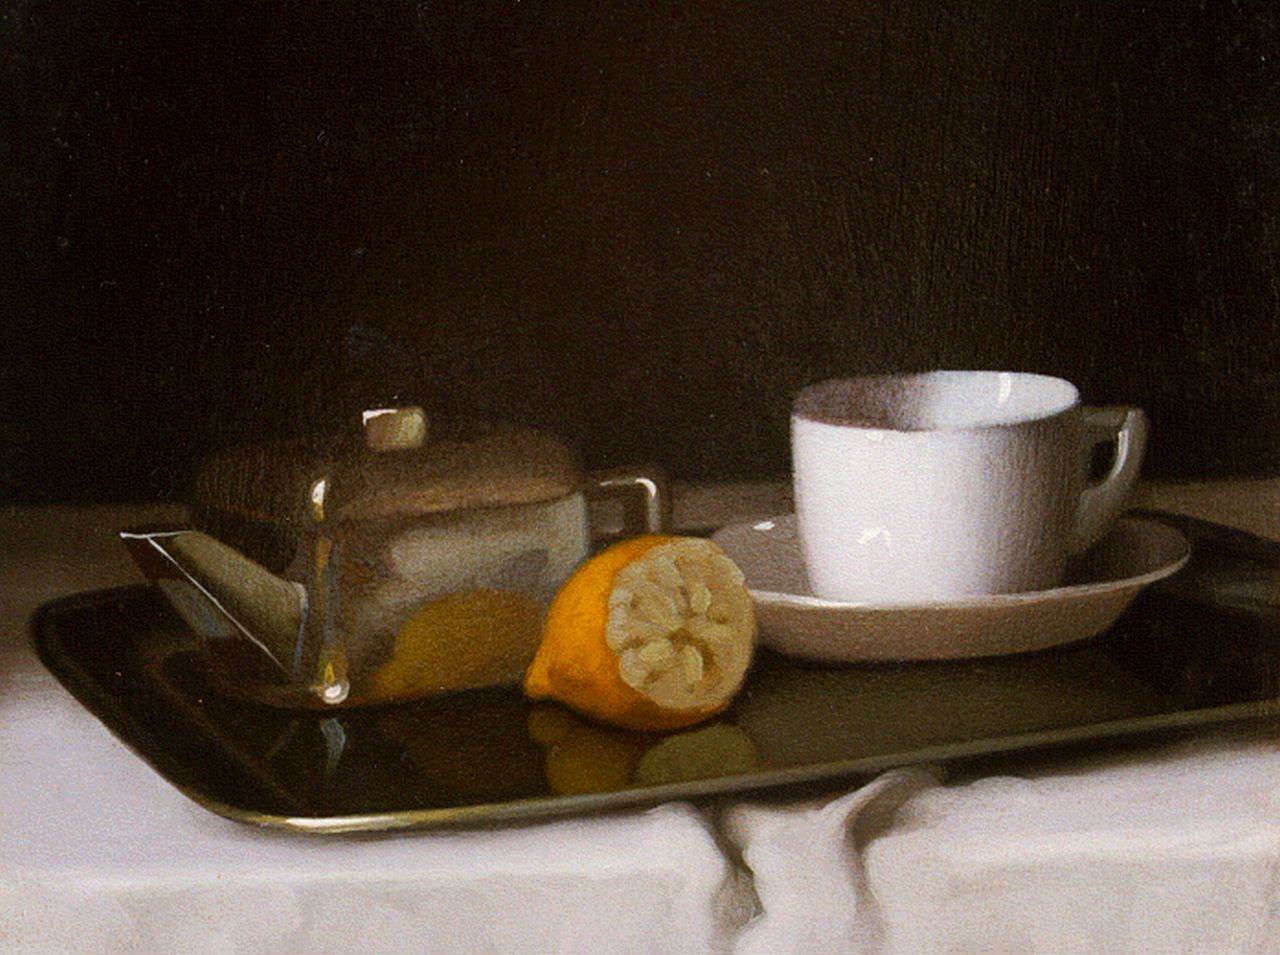 Janos Pentelei Molnar | Still life with a tea set and a lemon, oil on panel, 21.8 x 26.7 cm, signed l.l.